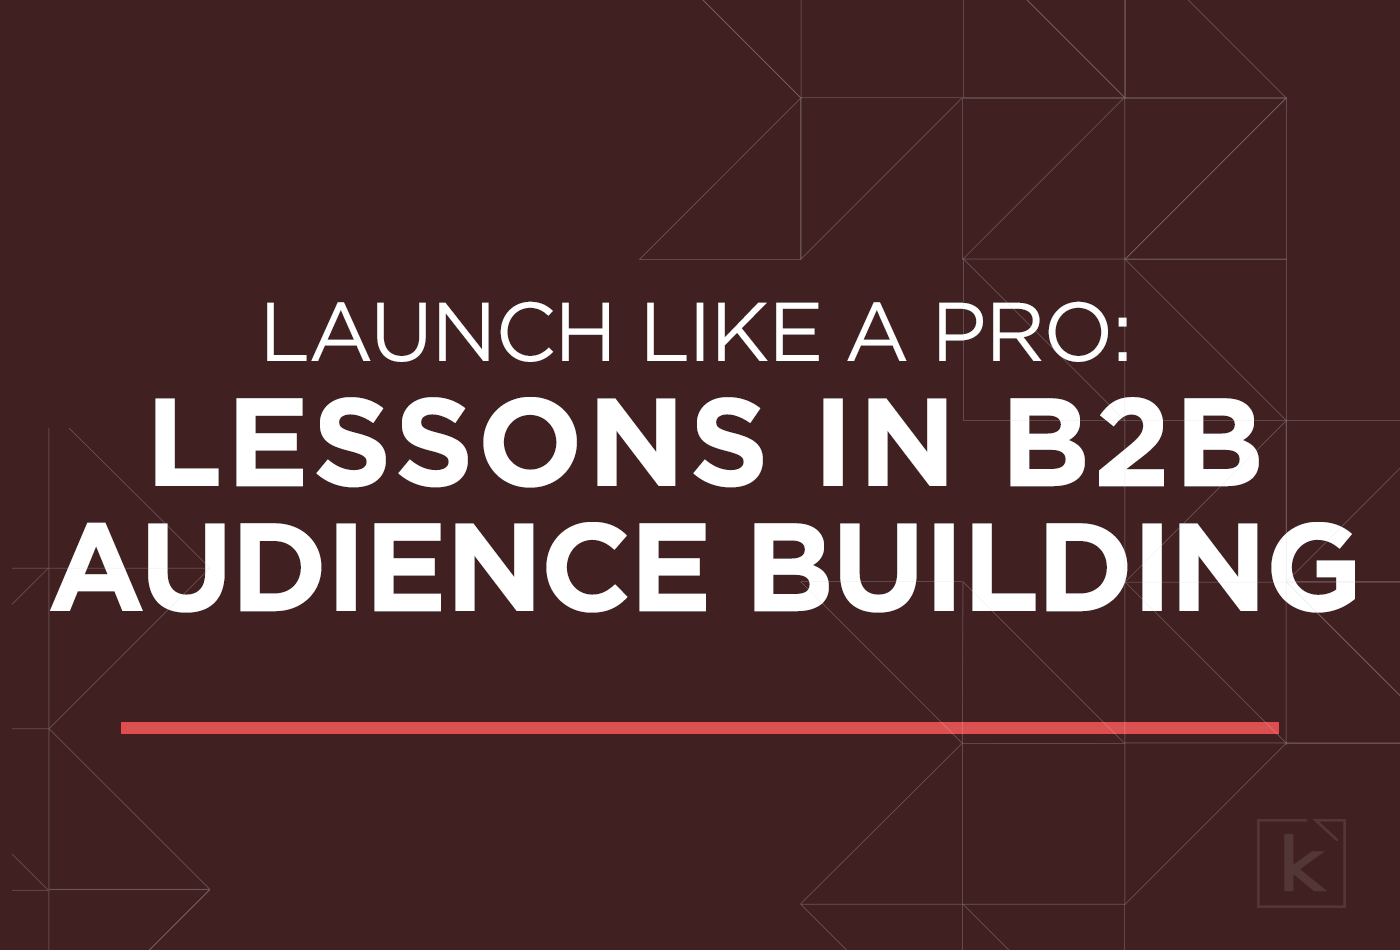 launch-lessons-b2b-audience-building